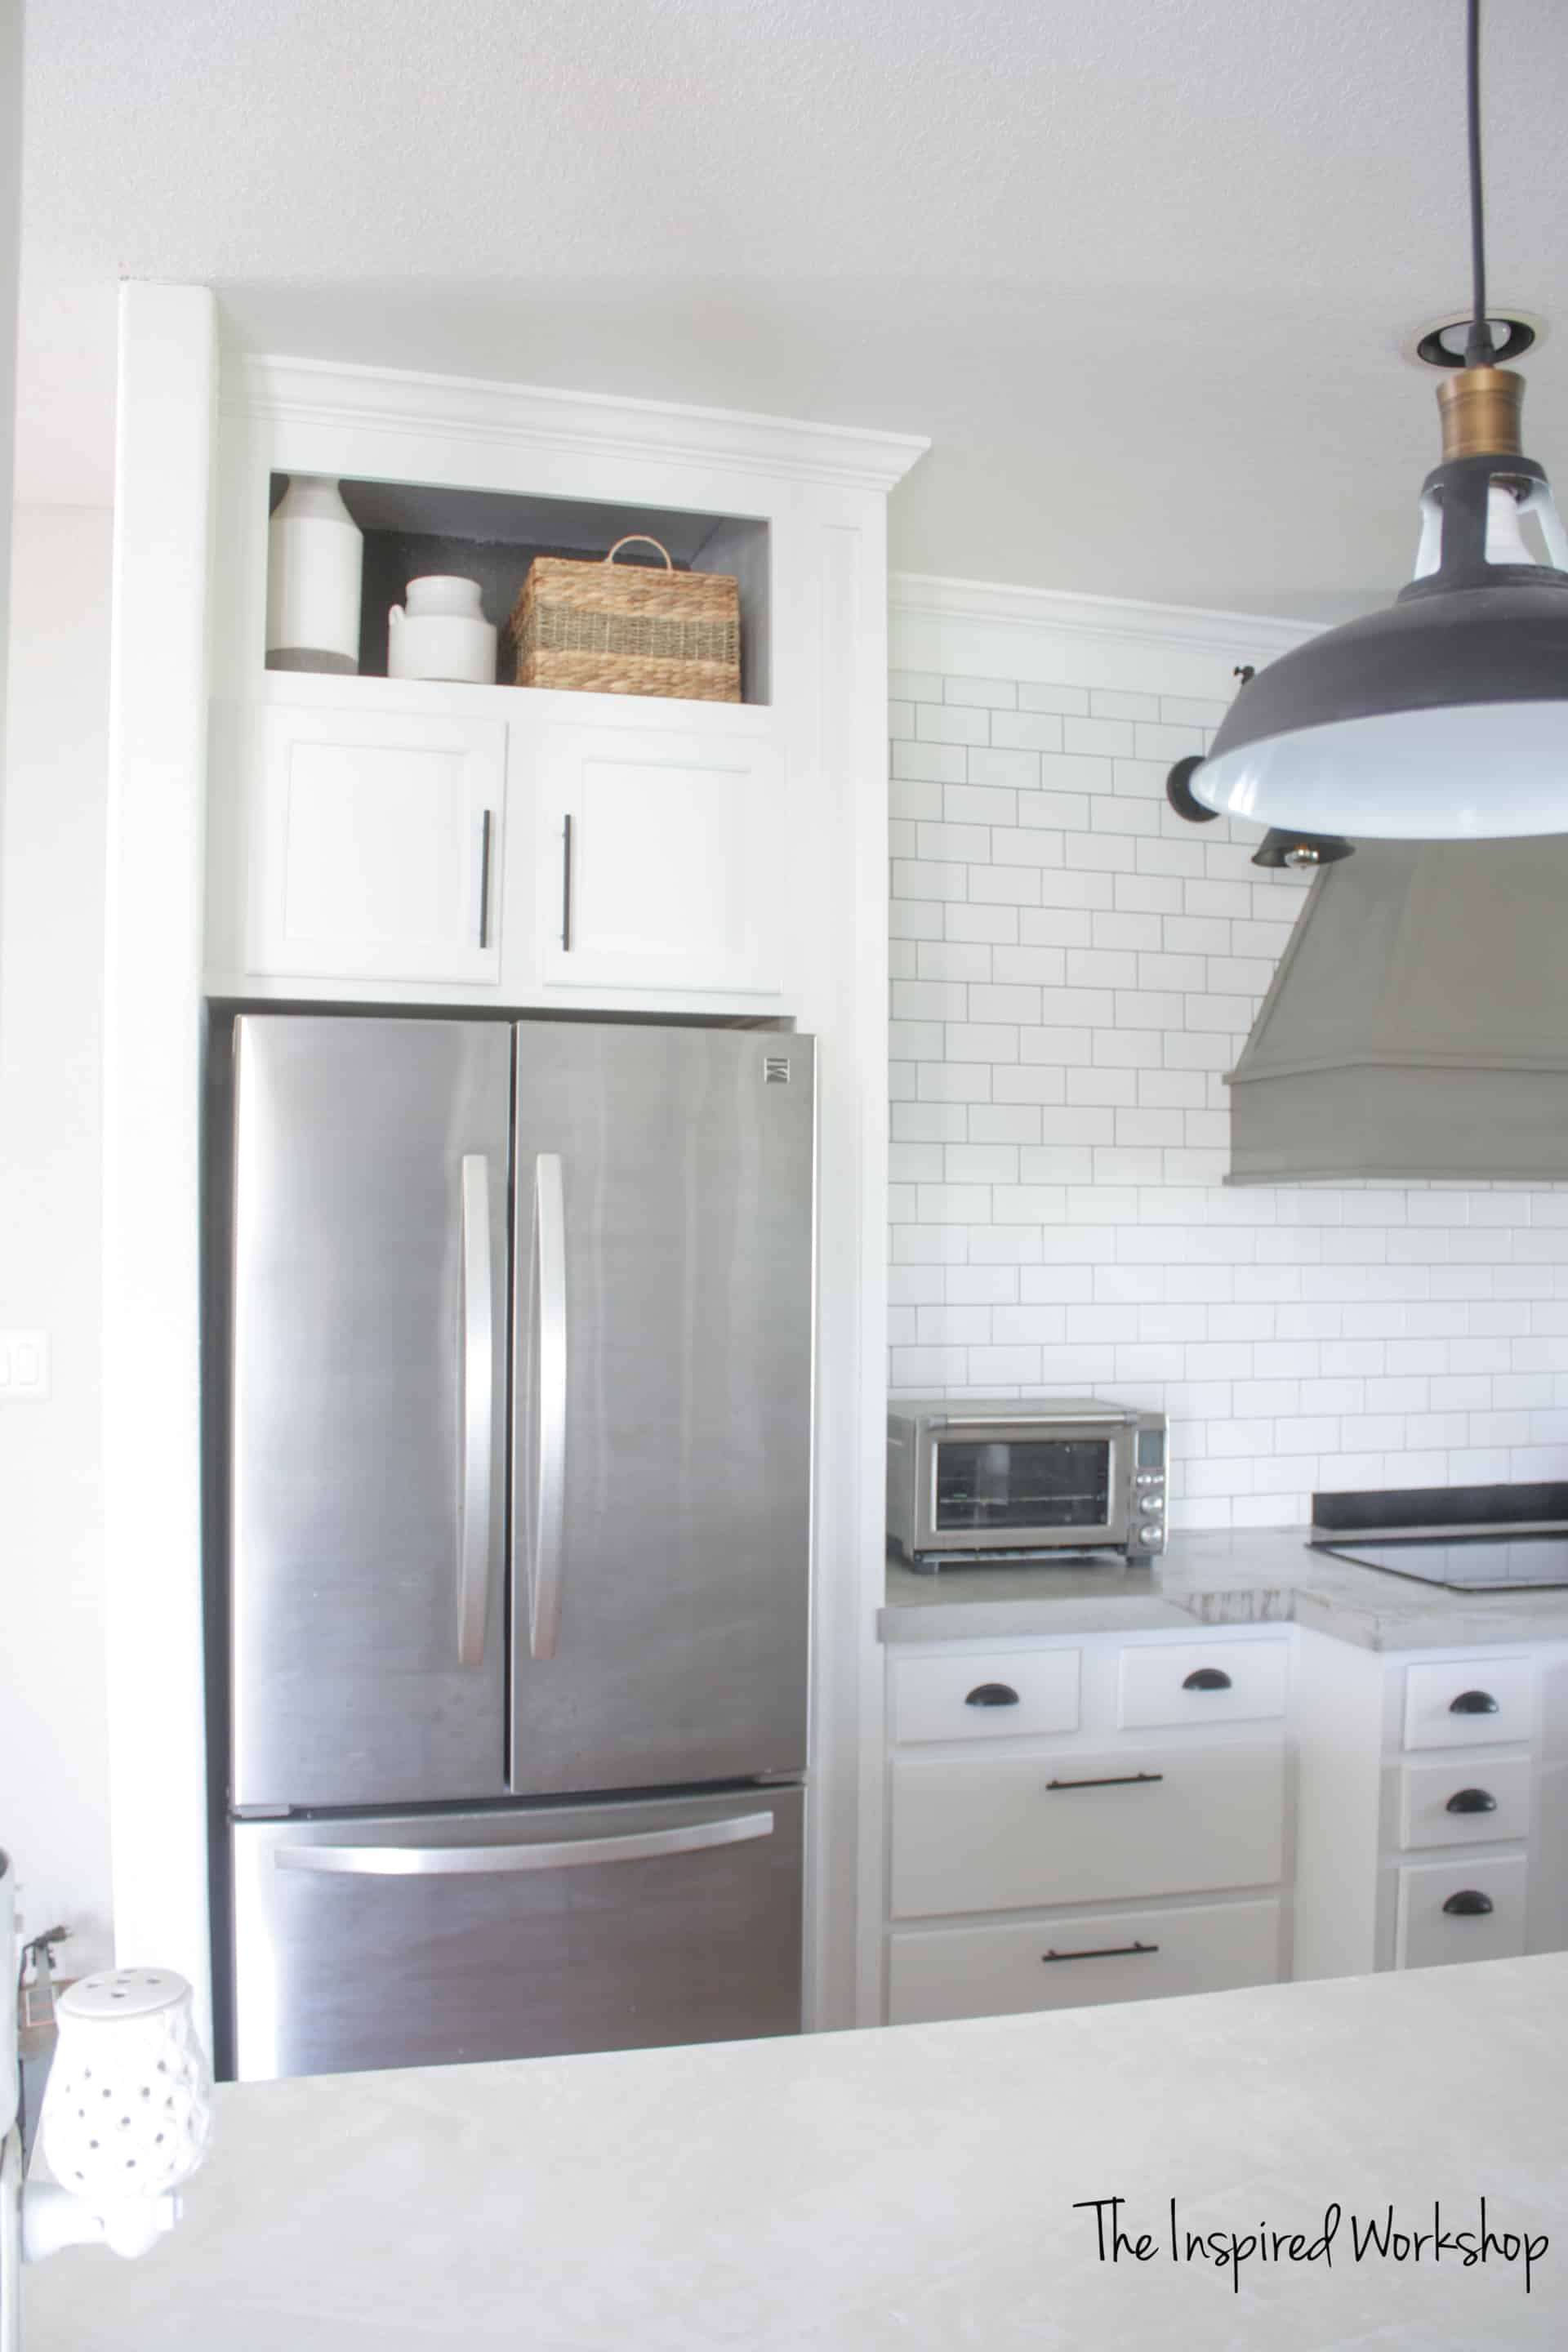 Building a cabinet Above the Fridge - kitchen renovation